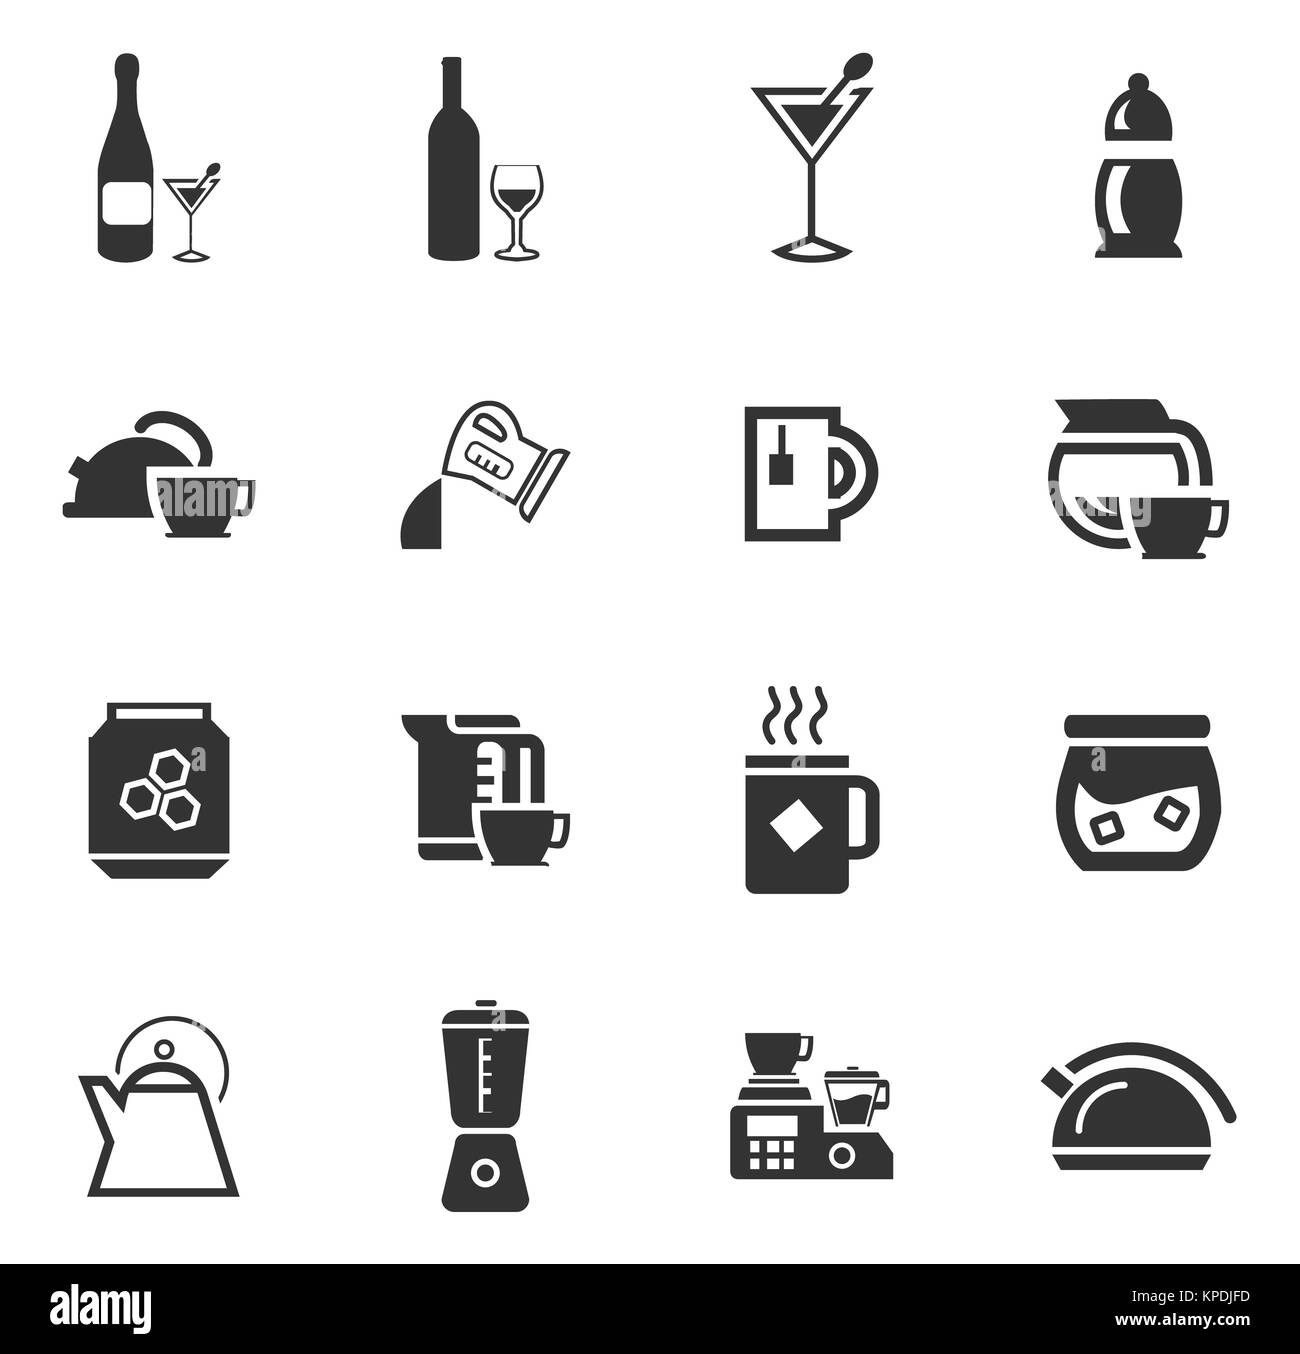 Utensils for the preparation of beverages - Stock Image